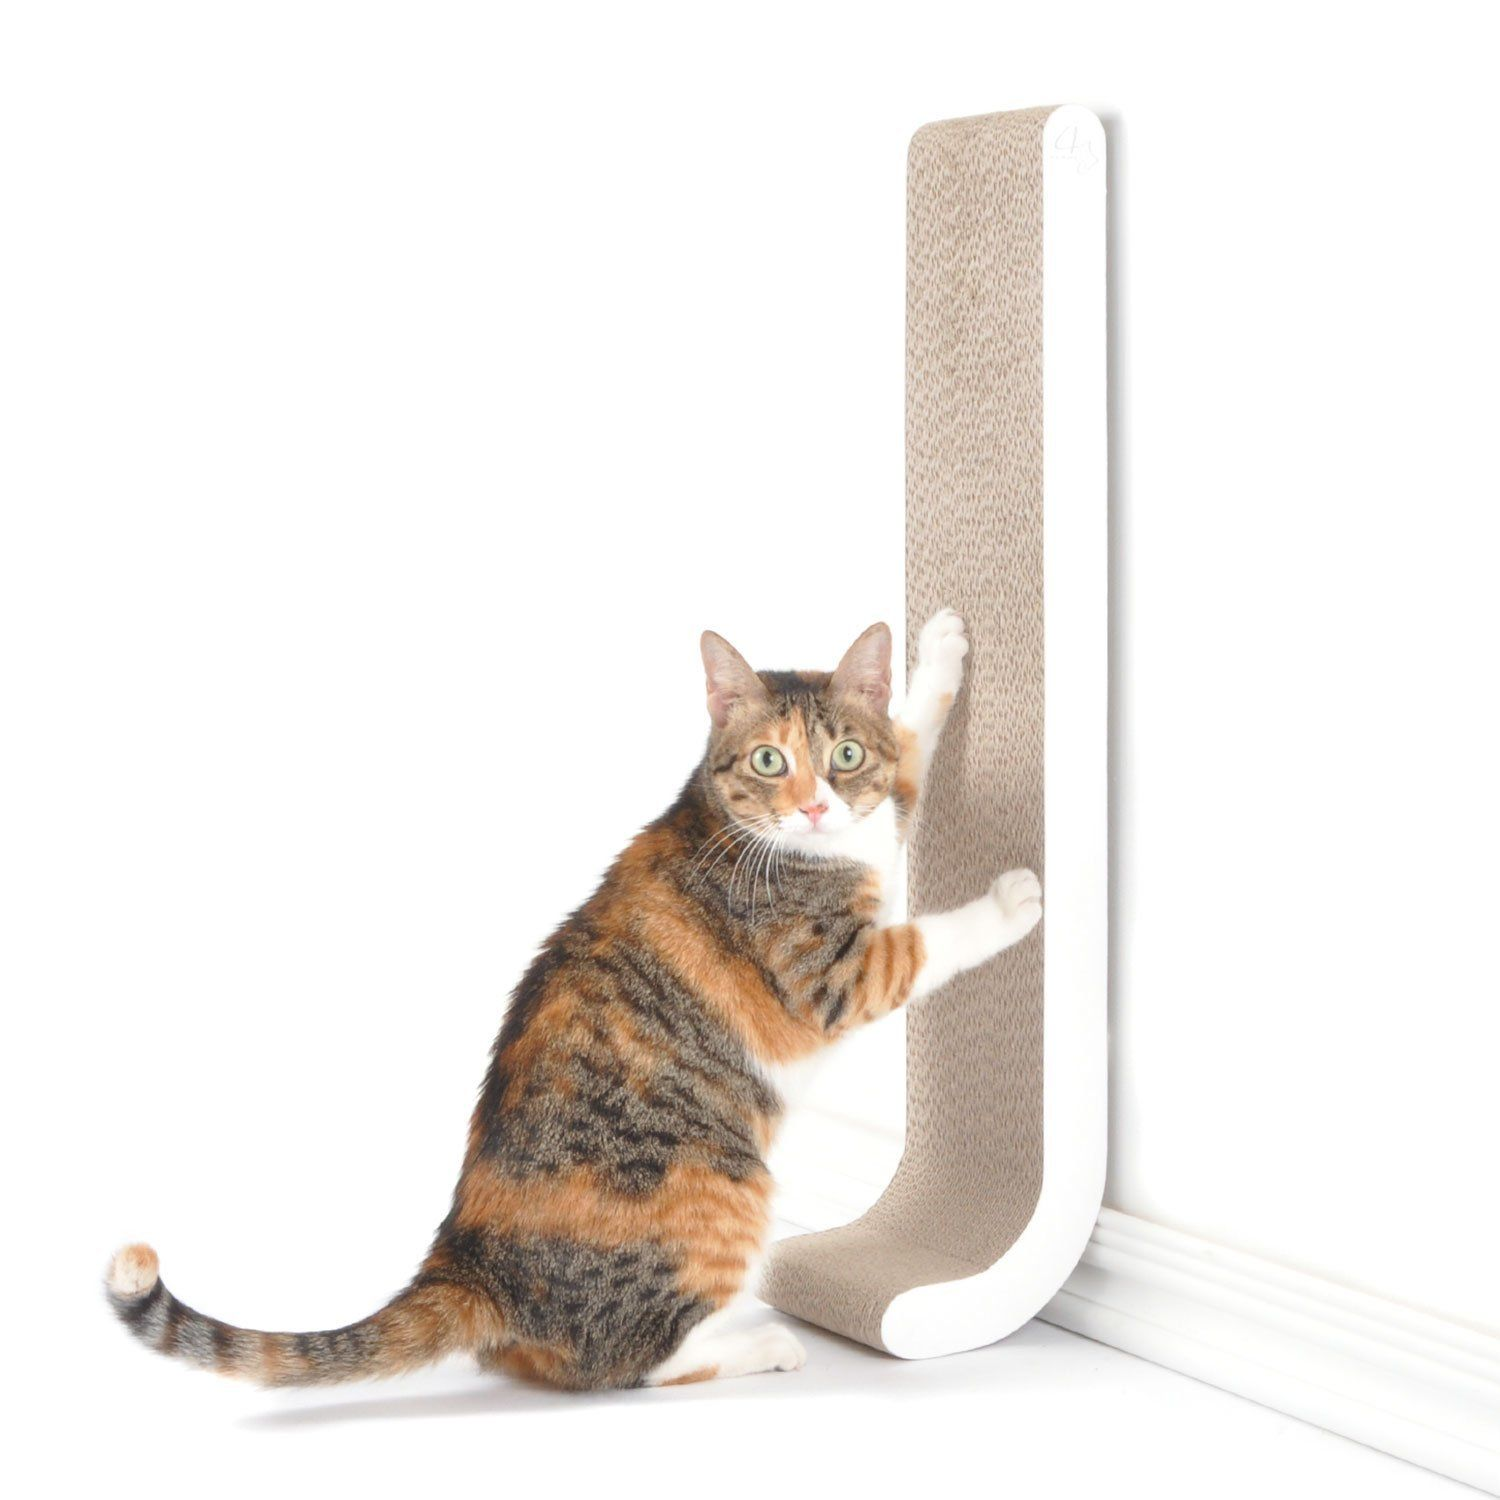 Amazon Com 4claws Wall Mounted Scratching Post 26 White Basics Collection Cat Scratcher Pet Best Cat Scratching Post Cat Scratching Post Cat Scratcher